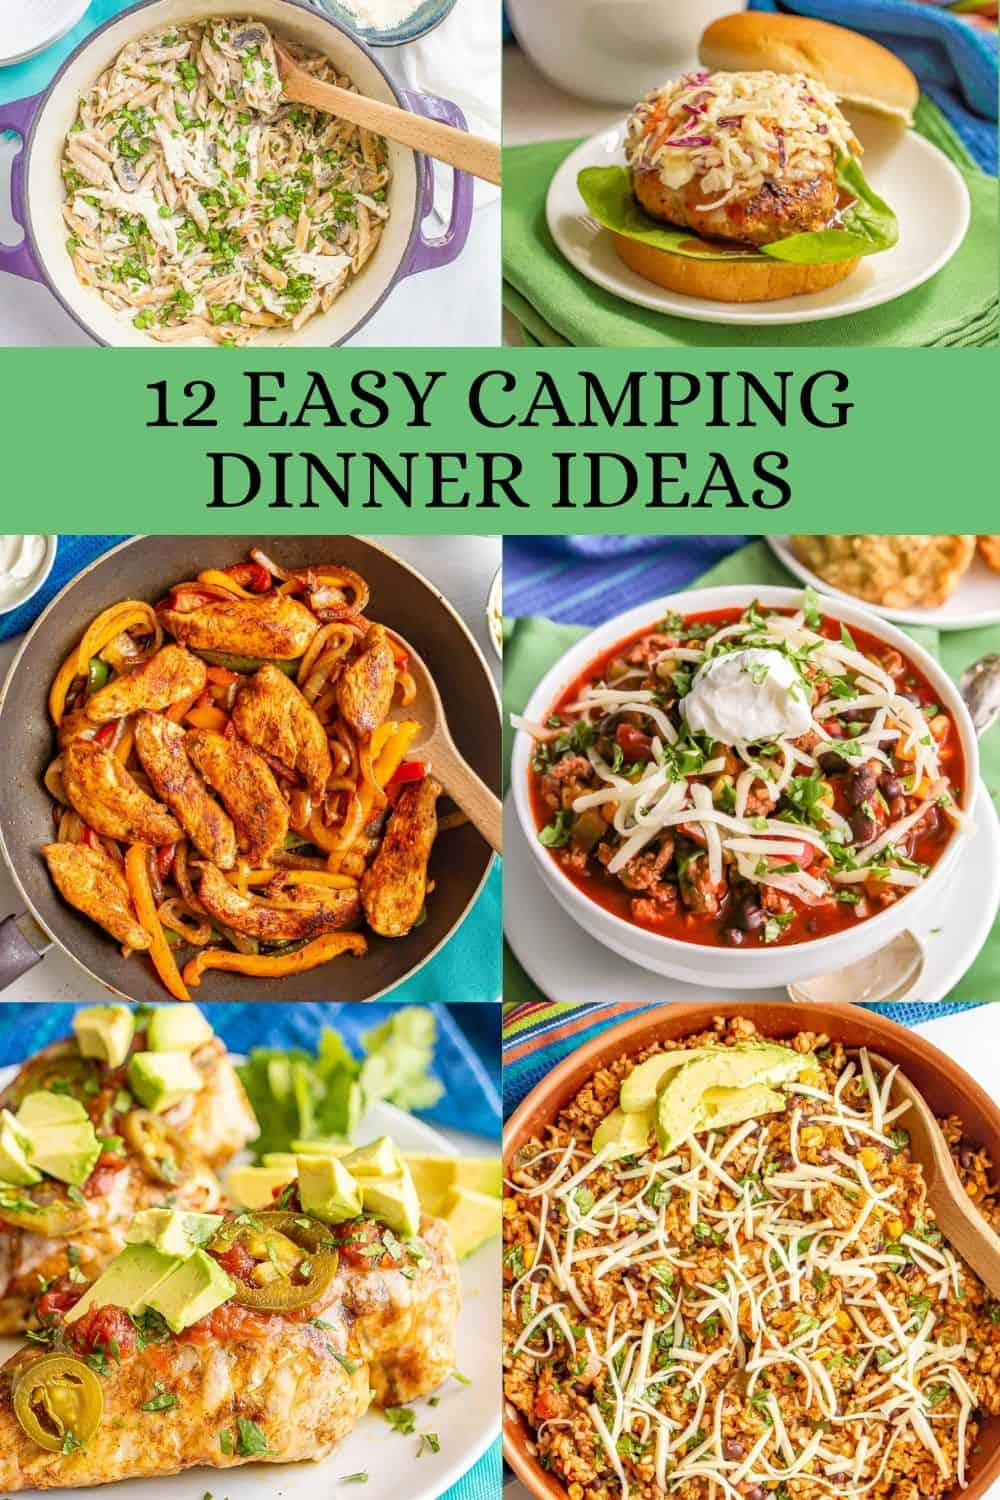 A collage of easy dinner ideas for camping with a text block in the image